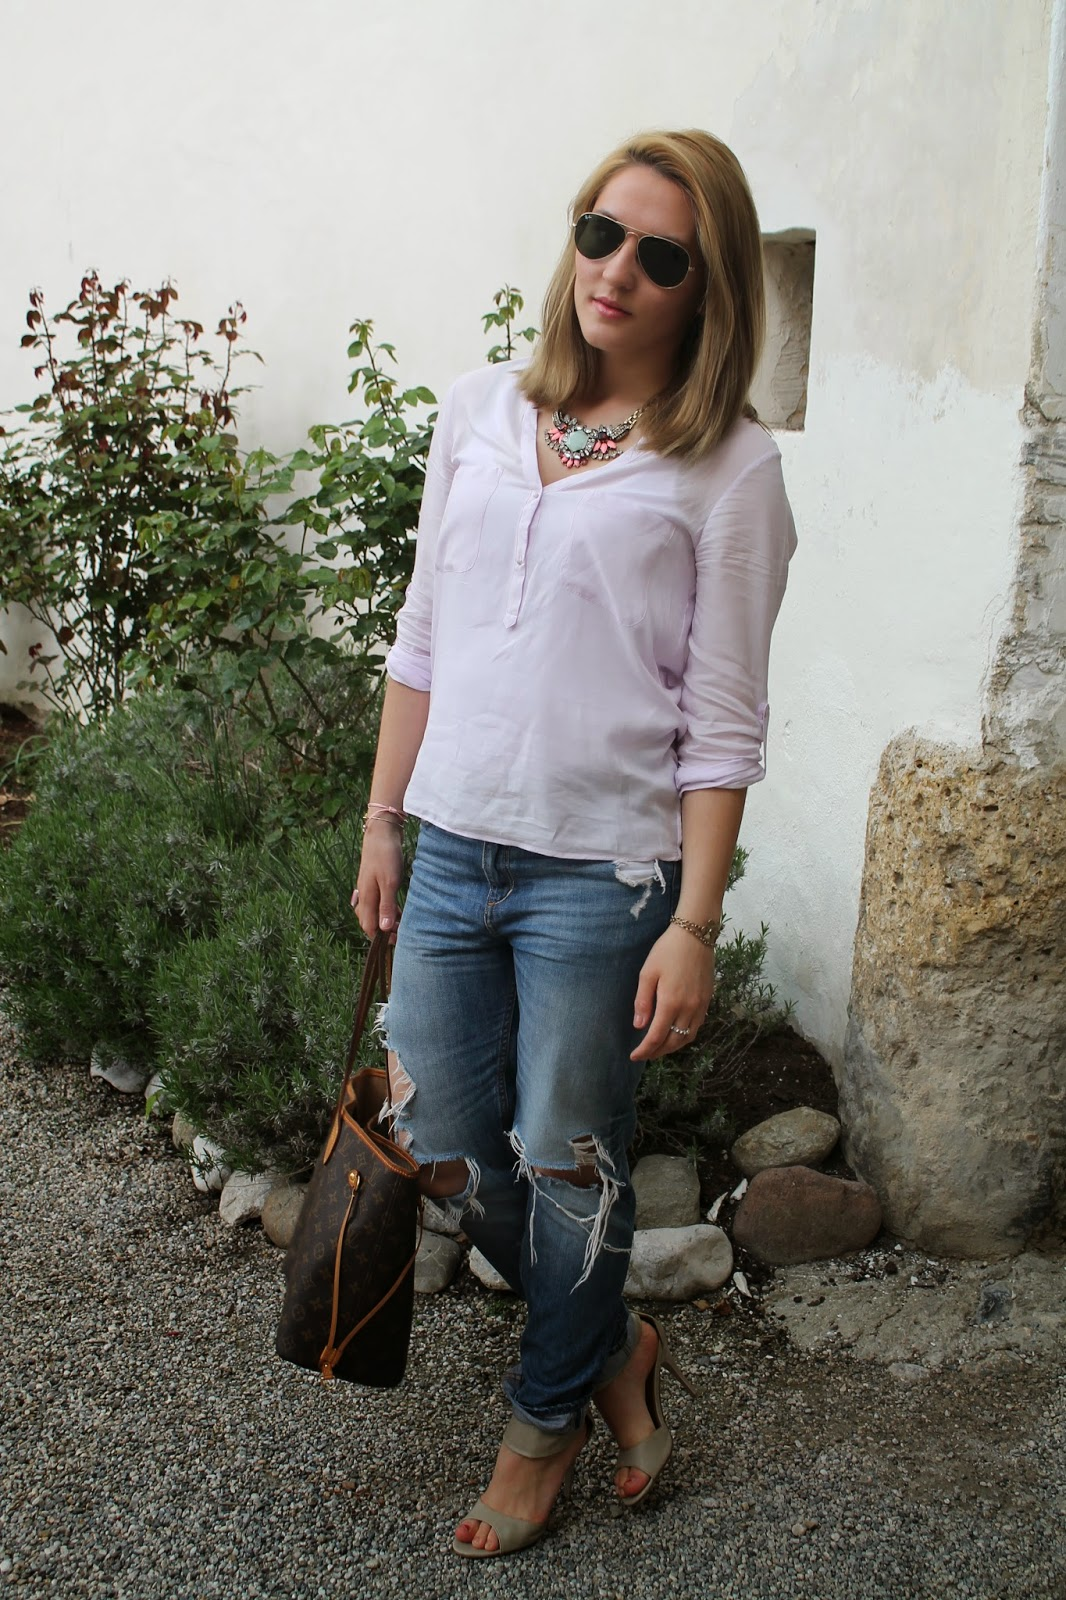 Fashionblogger Austria / Österreich / Deutsch / German / Kärnten / Carinthia / Klagenfurt / Köttmannsdorf / Spring / Look / Outfit / Streetstyle / Hollenburg / Boyfriend Jeans / Tunika / Blouse / Pastel / Flowers / Sandals / Neverfull / Louis Vuitton / Zara / Forever 18 / Stament Necklace / Forever 21 / H&M / Ray Ban / Rosental /